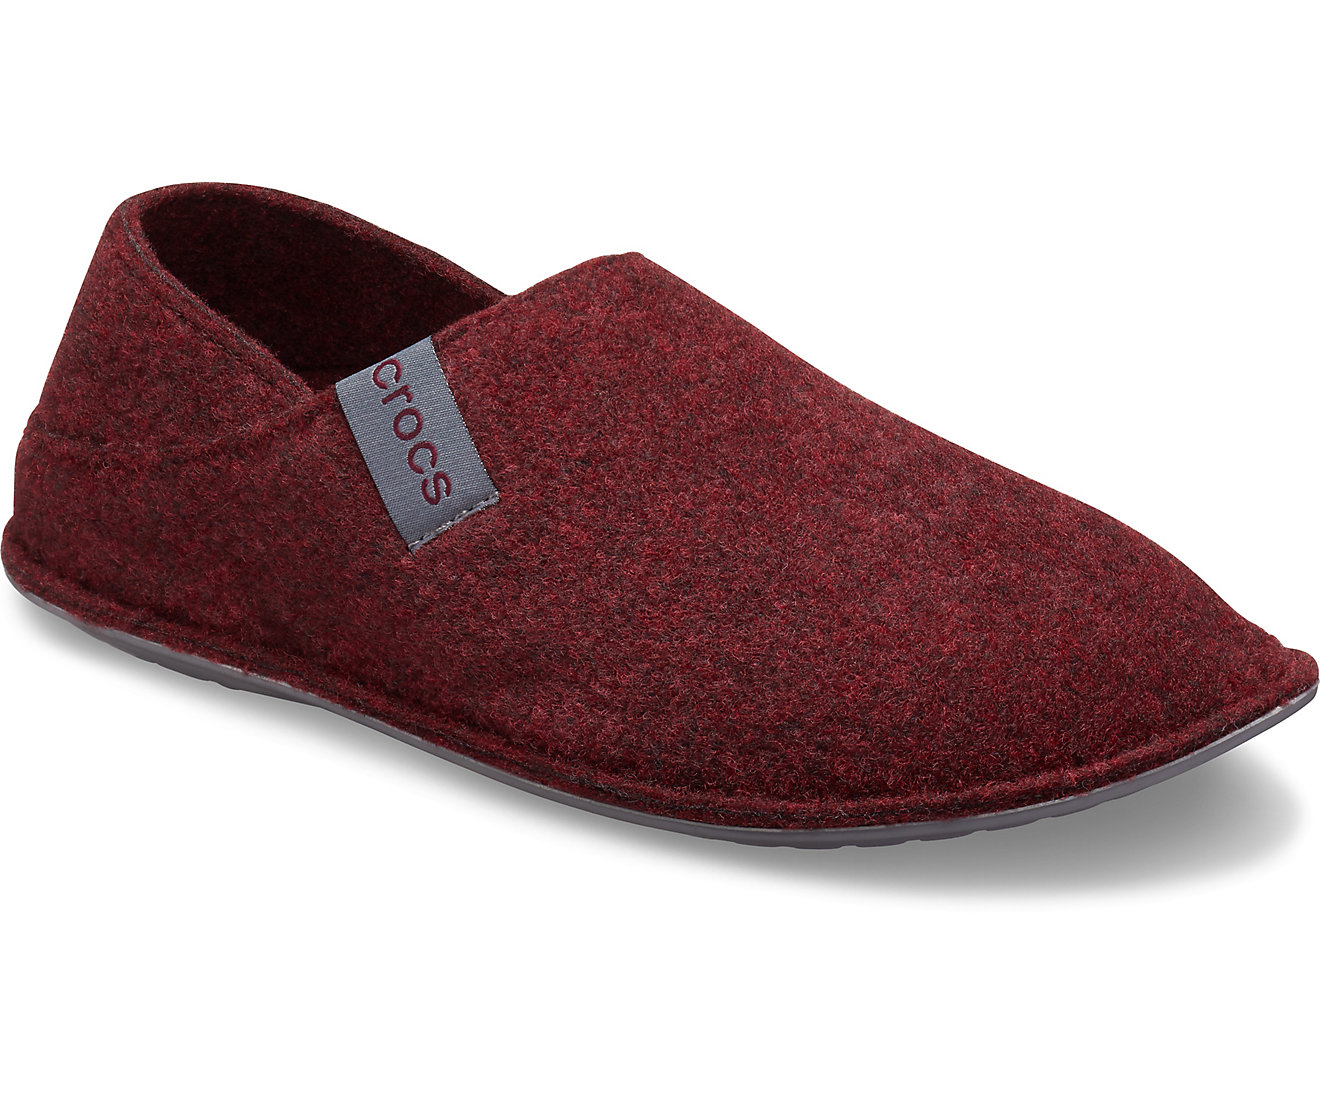 Crocs Classic Convertible Slipper 205837-60V BURGUNDY/BURGUNDY Μπορντώ